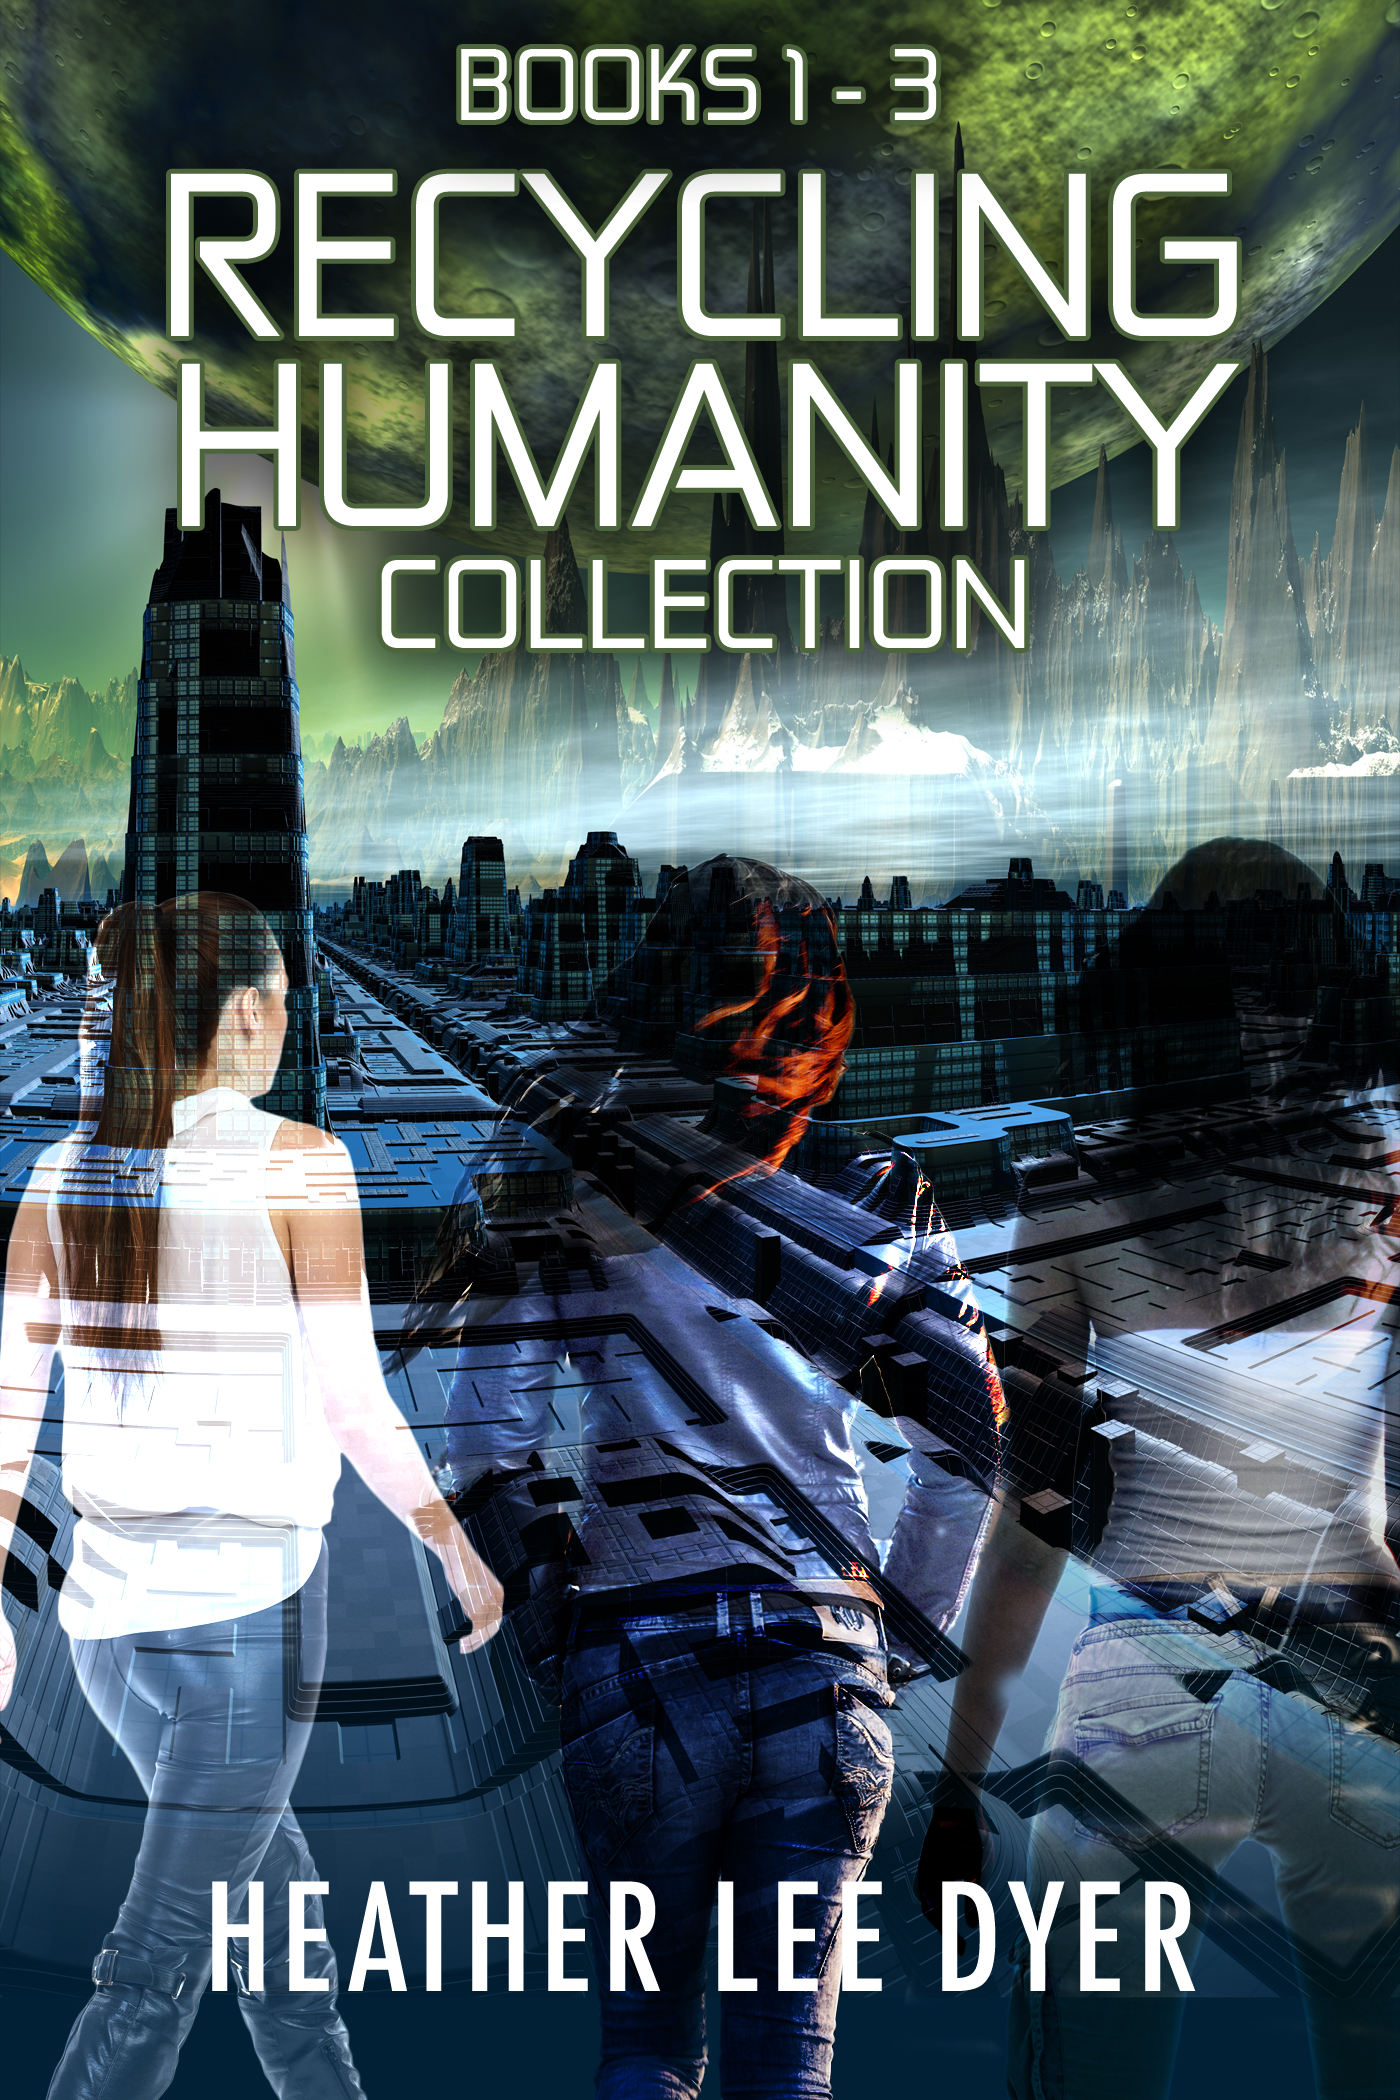 Download the Recycling Humanity e-book collection FREE